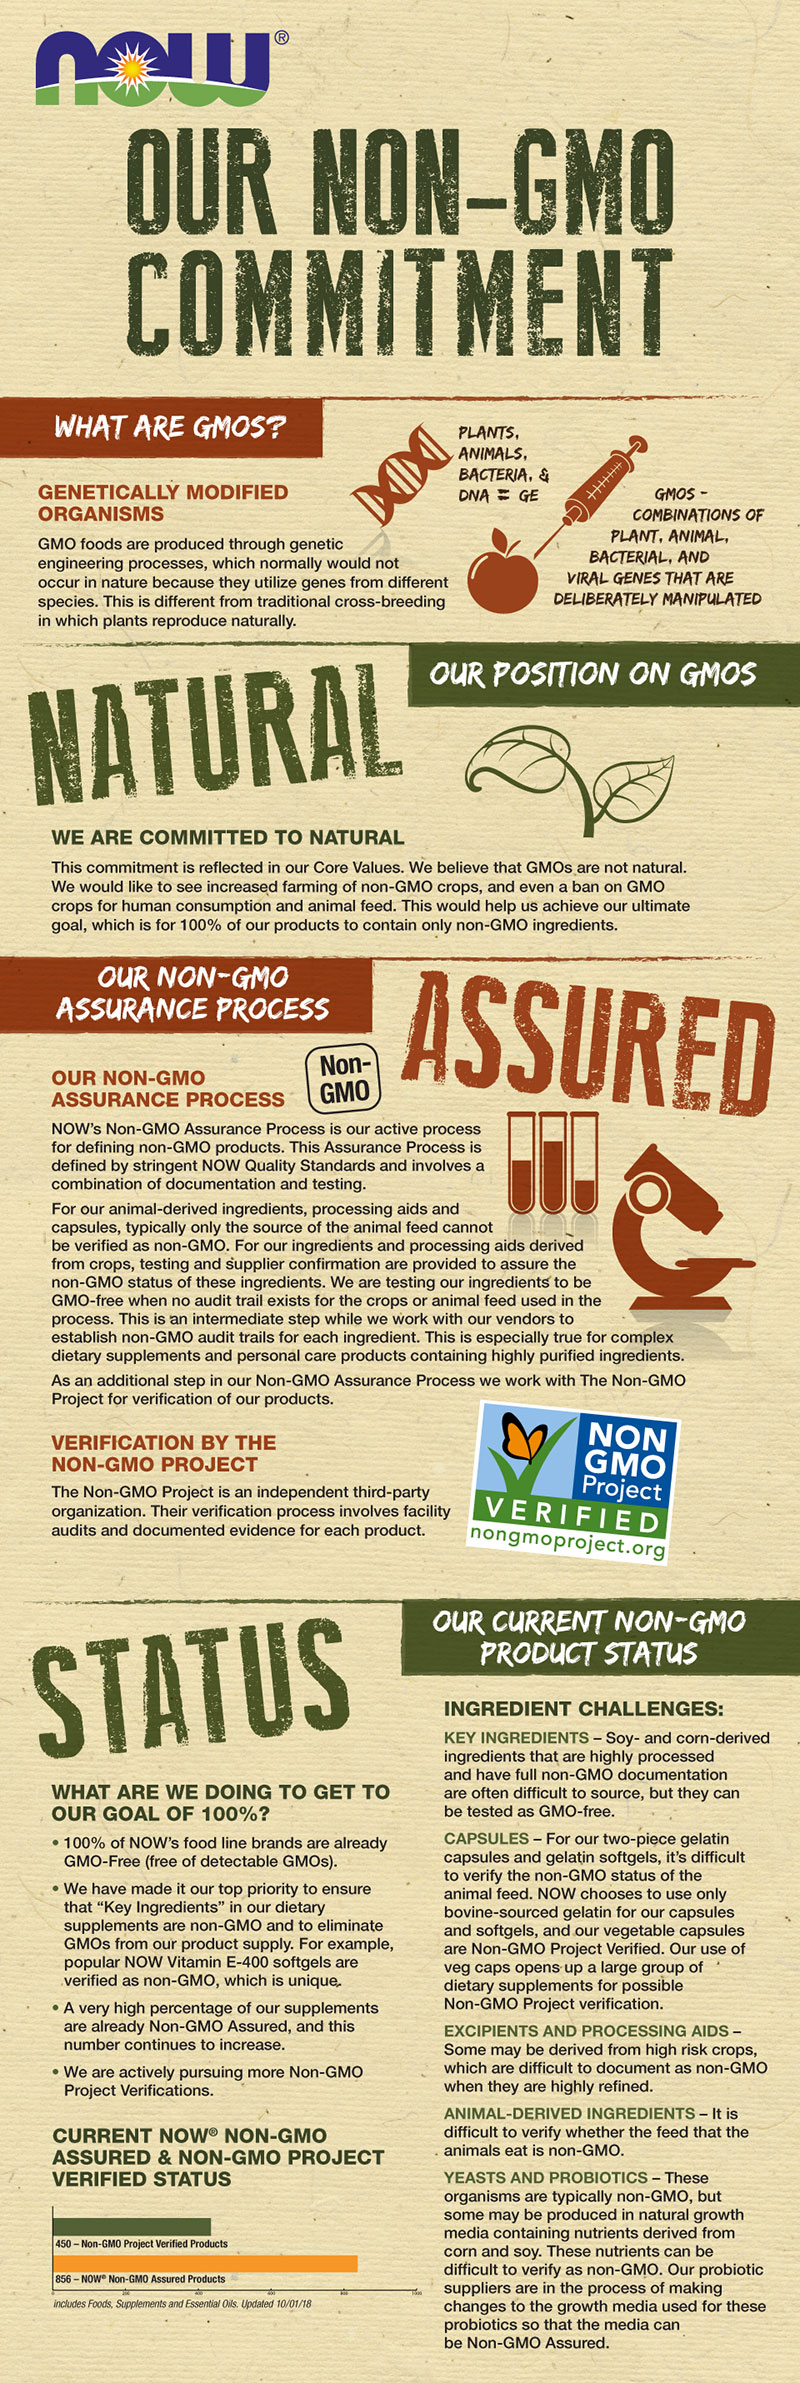 non gmo infographic updated 10/18